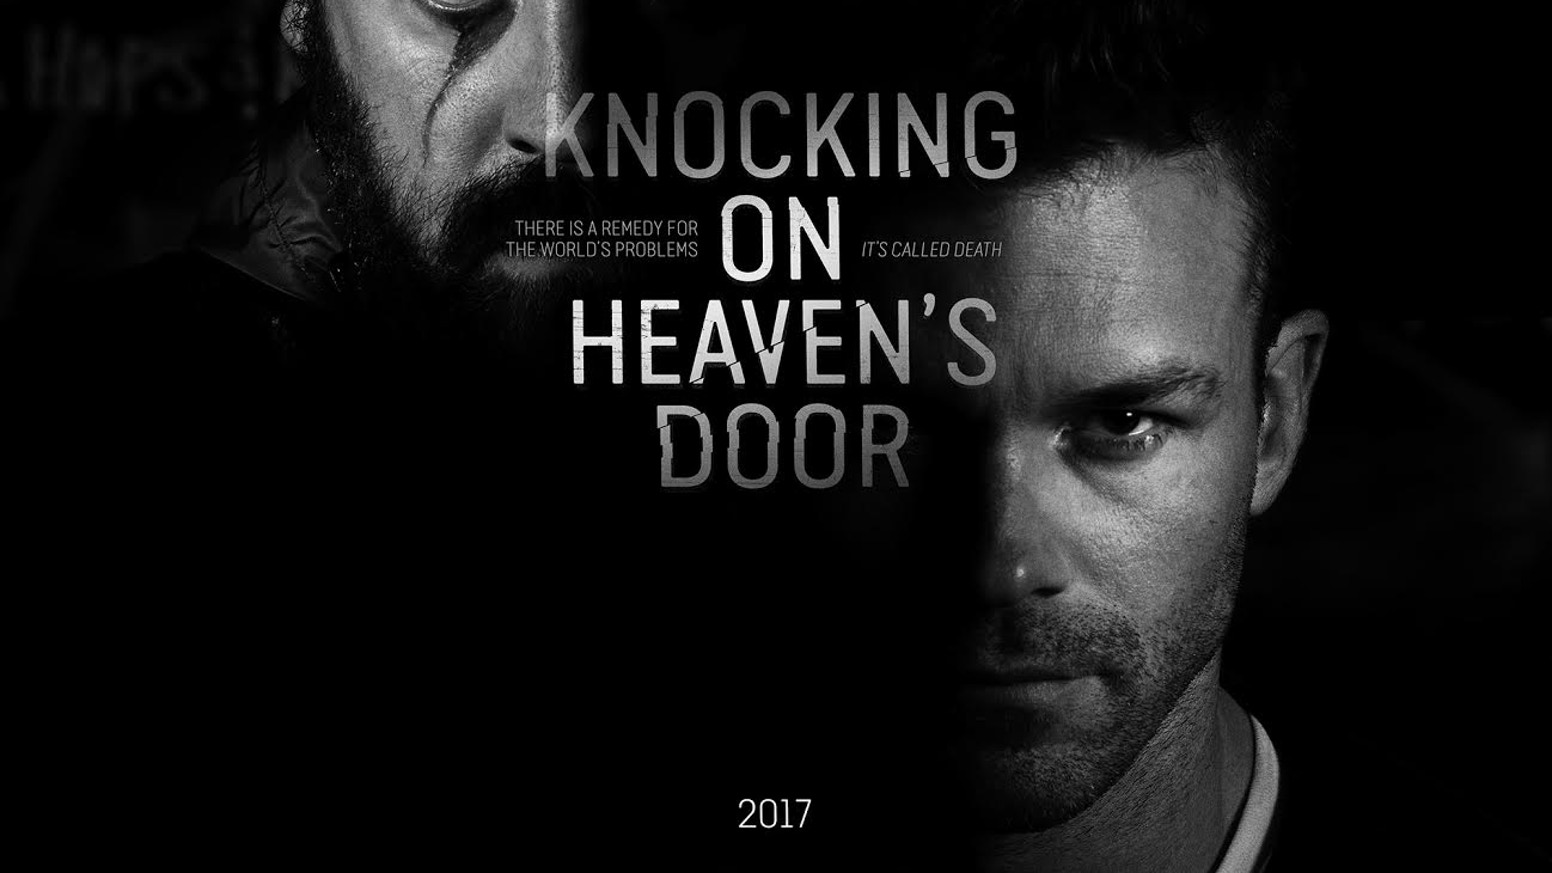 KNOCKING ON HEAVENS DOOR: A FILM NOIR FEATURE by Jeff